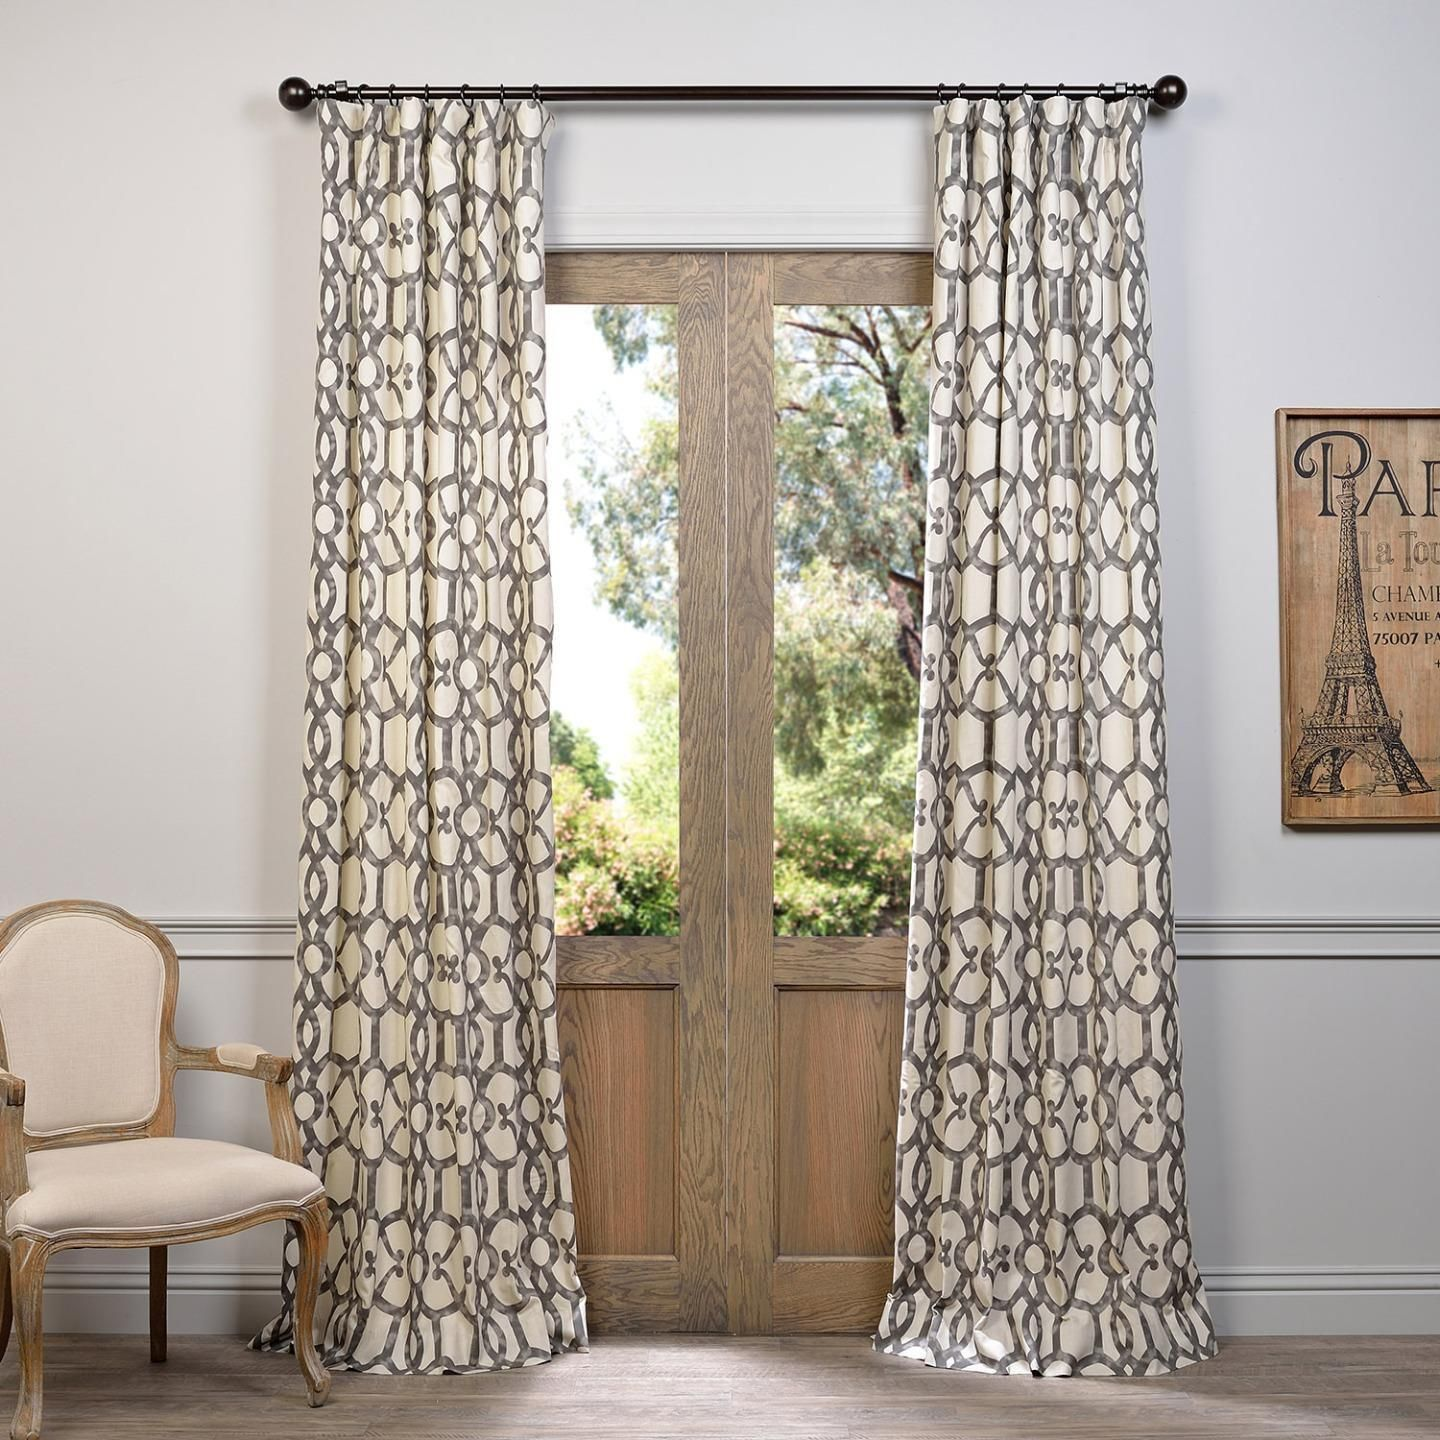 Curtain pair overstock shopping great deals on lights out curtains -  These Printed Cotton Curtains And Drapes Provide A Casual And Refined Look To Any Window